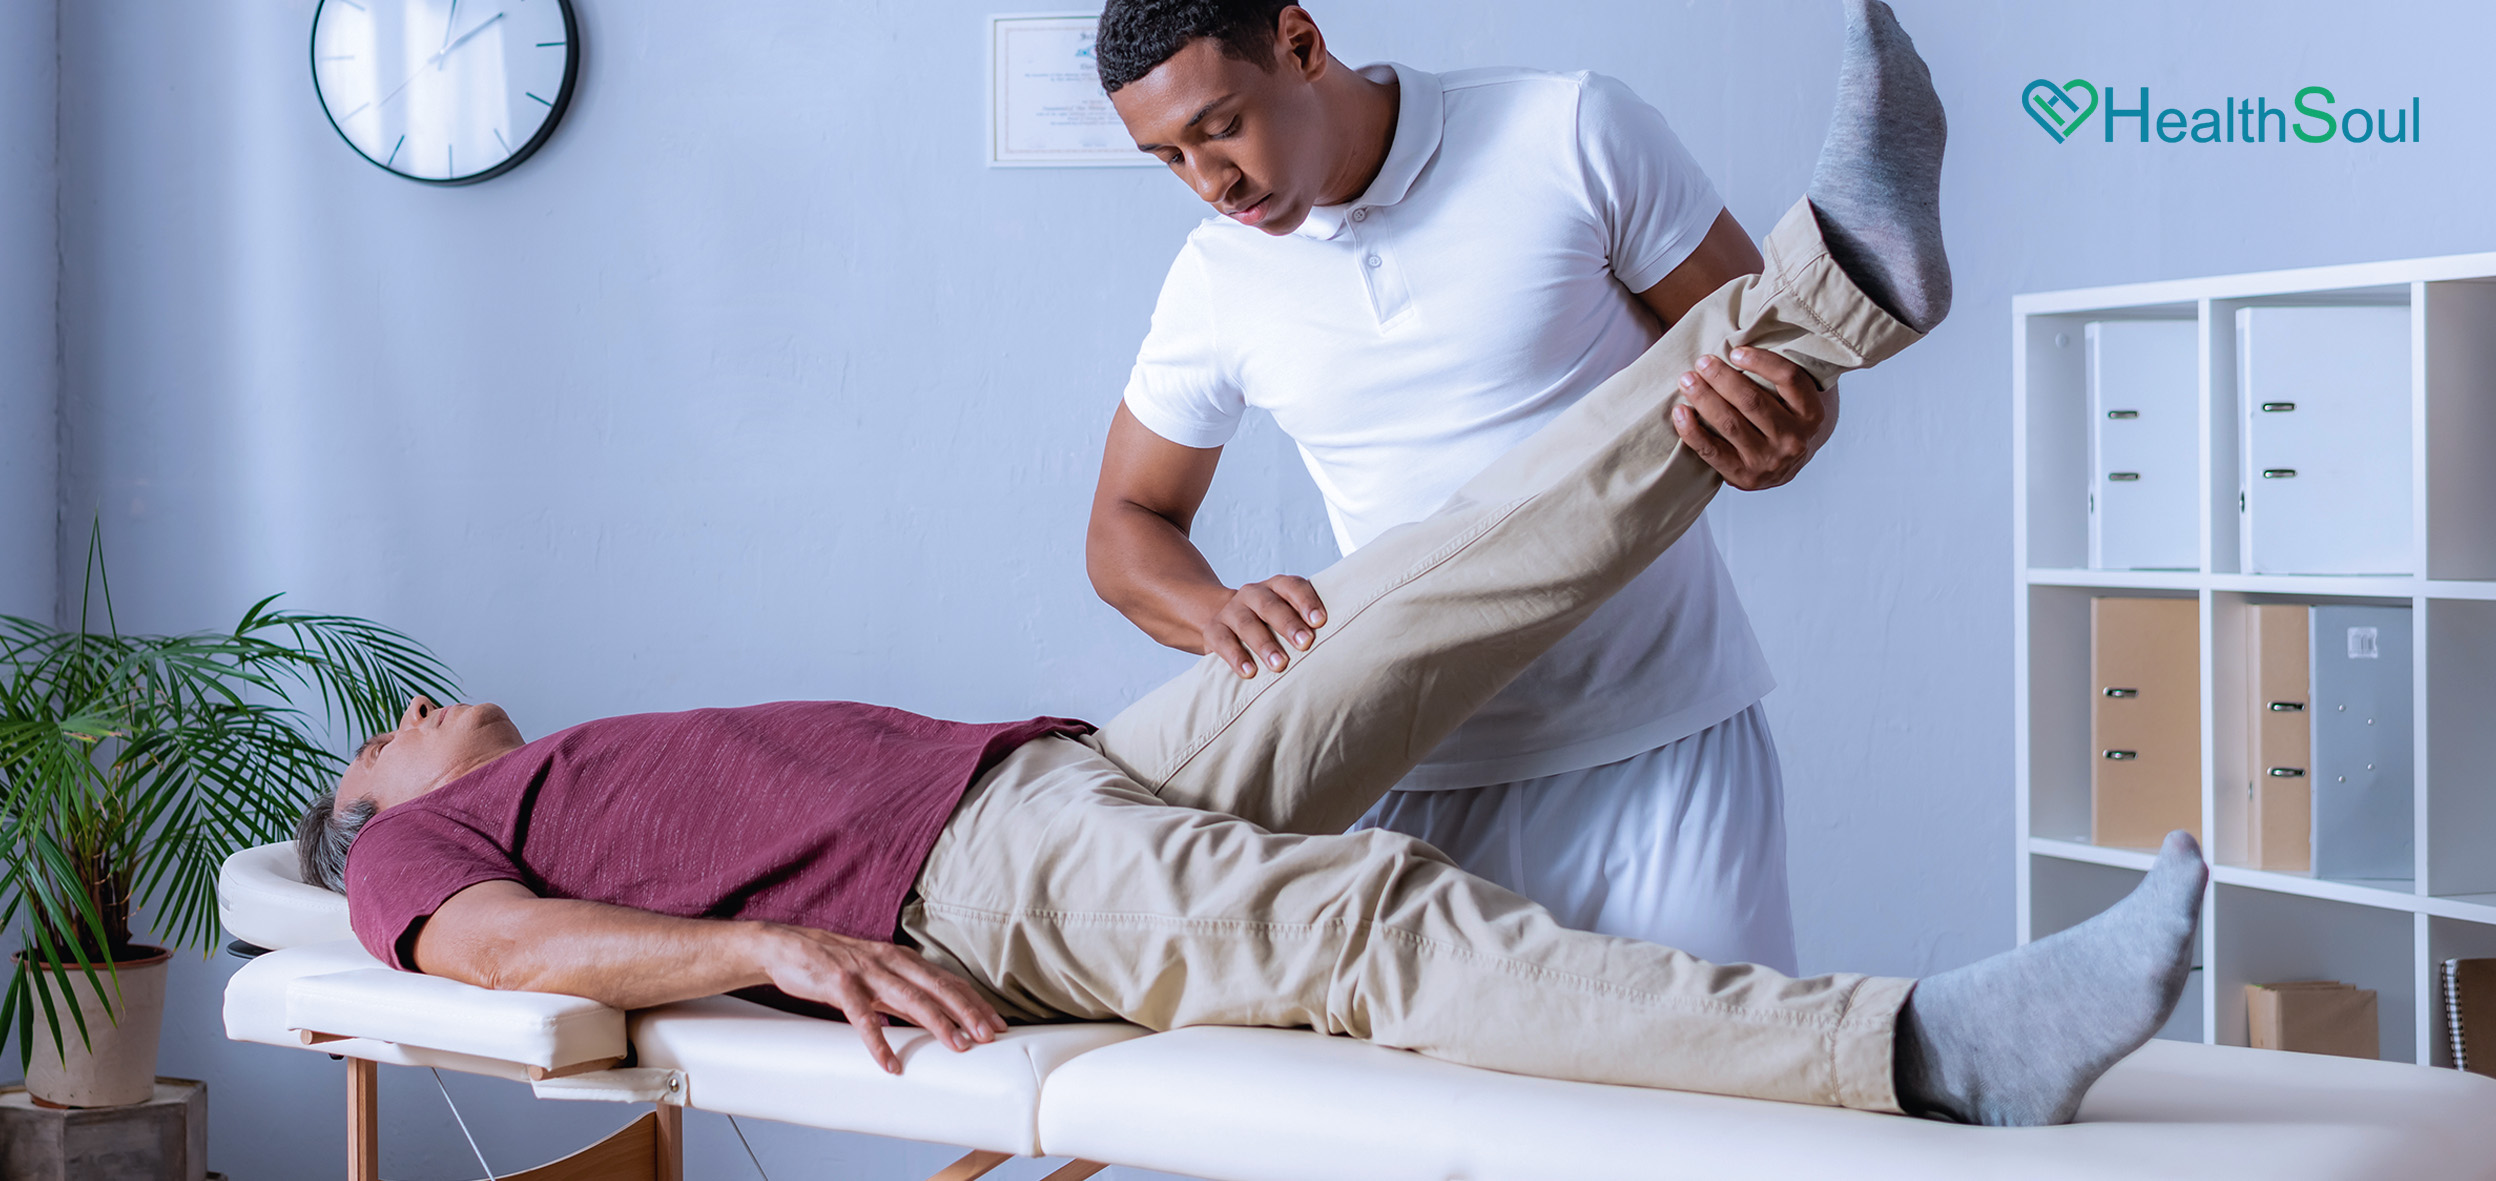 Chiropractic Care For Pain Relief: All You Need to Know | HealthSoul